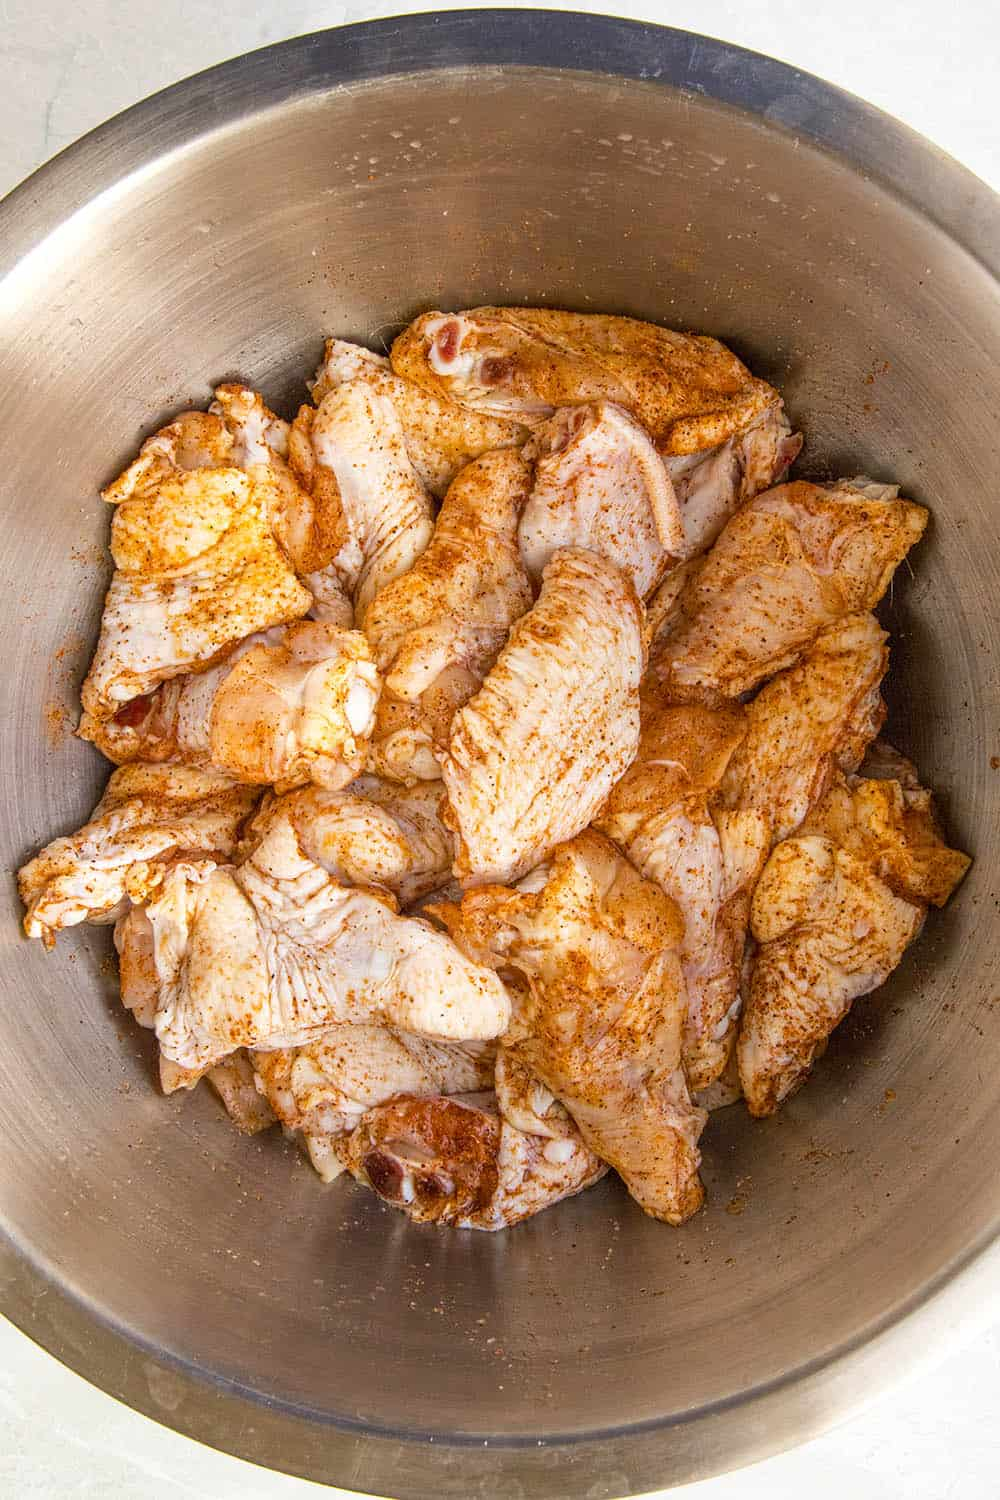 Seasoned chicken wings, ready to cook